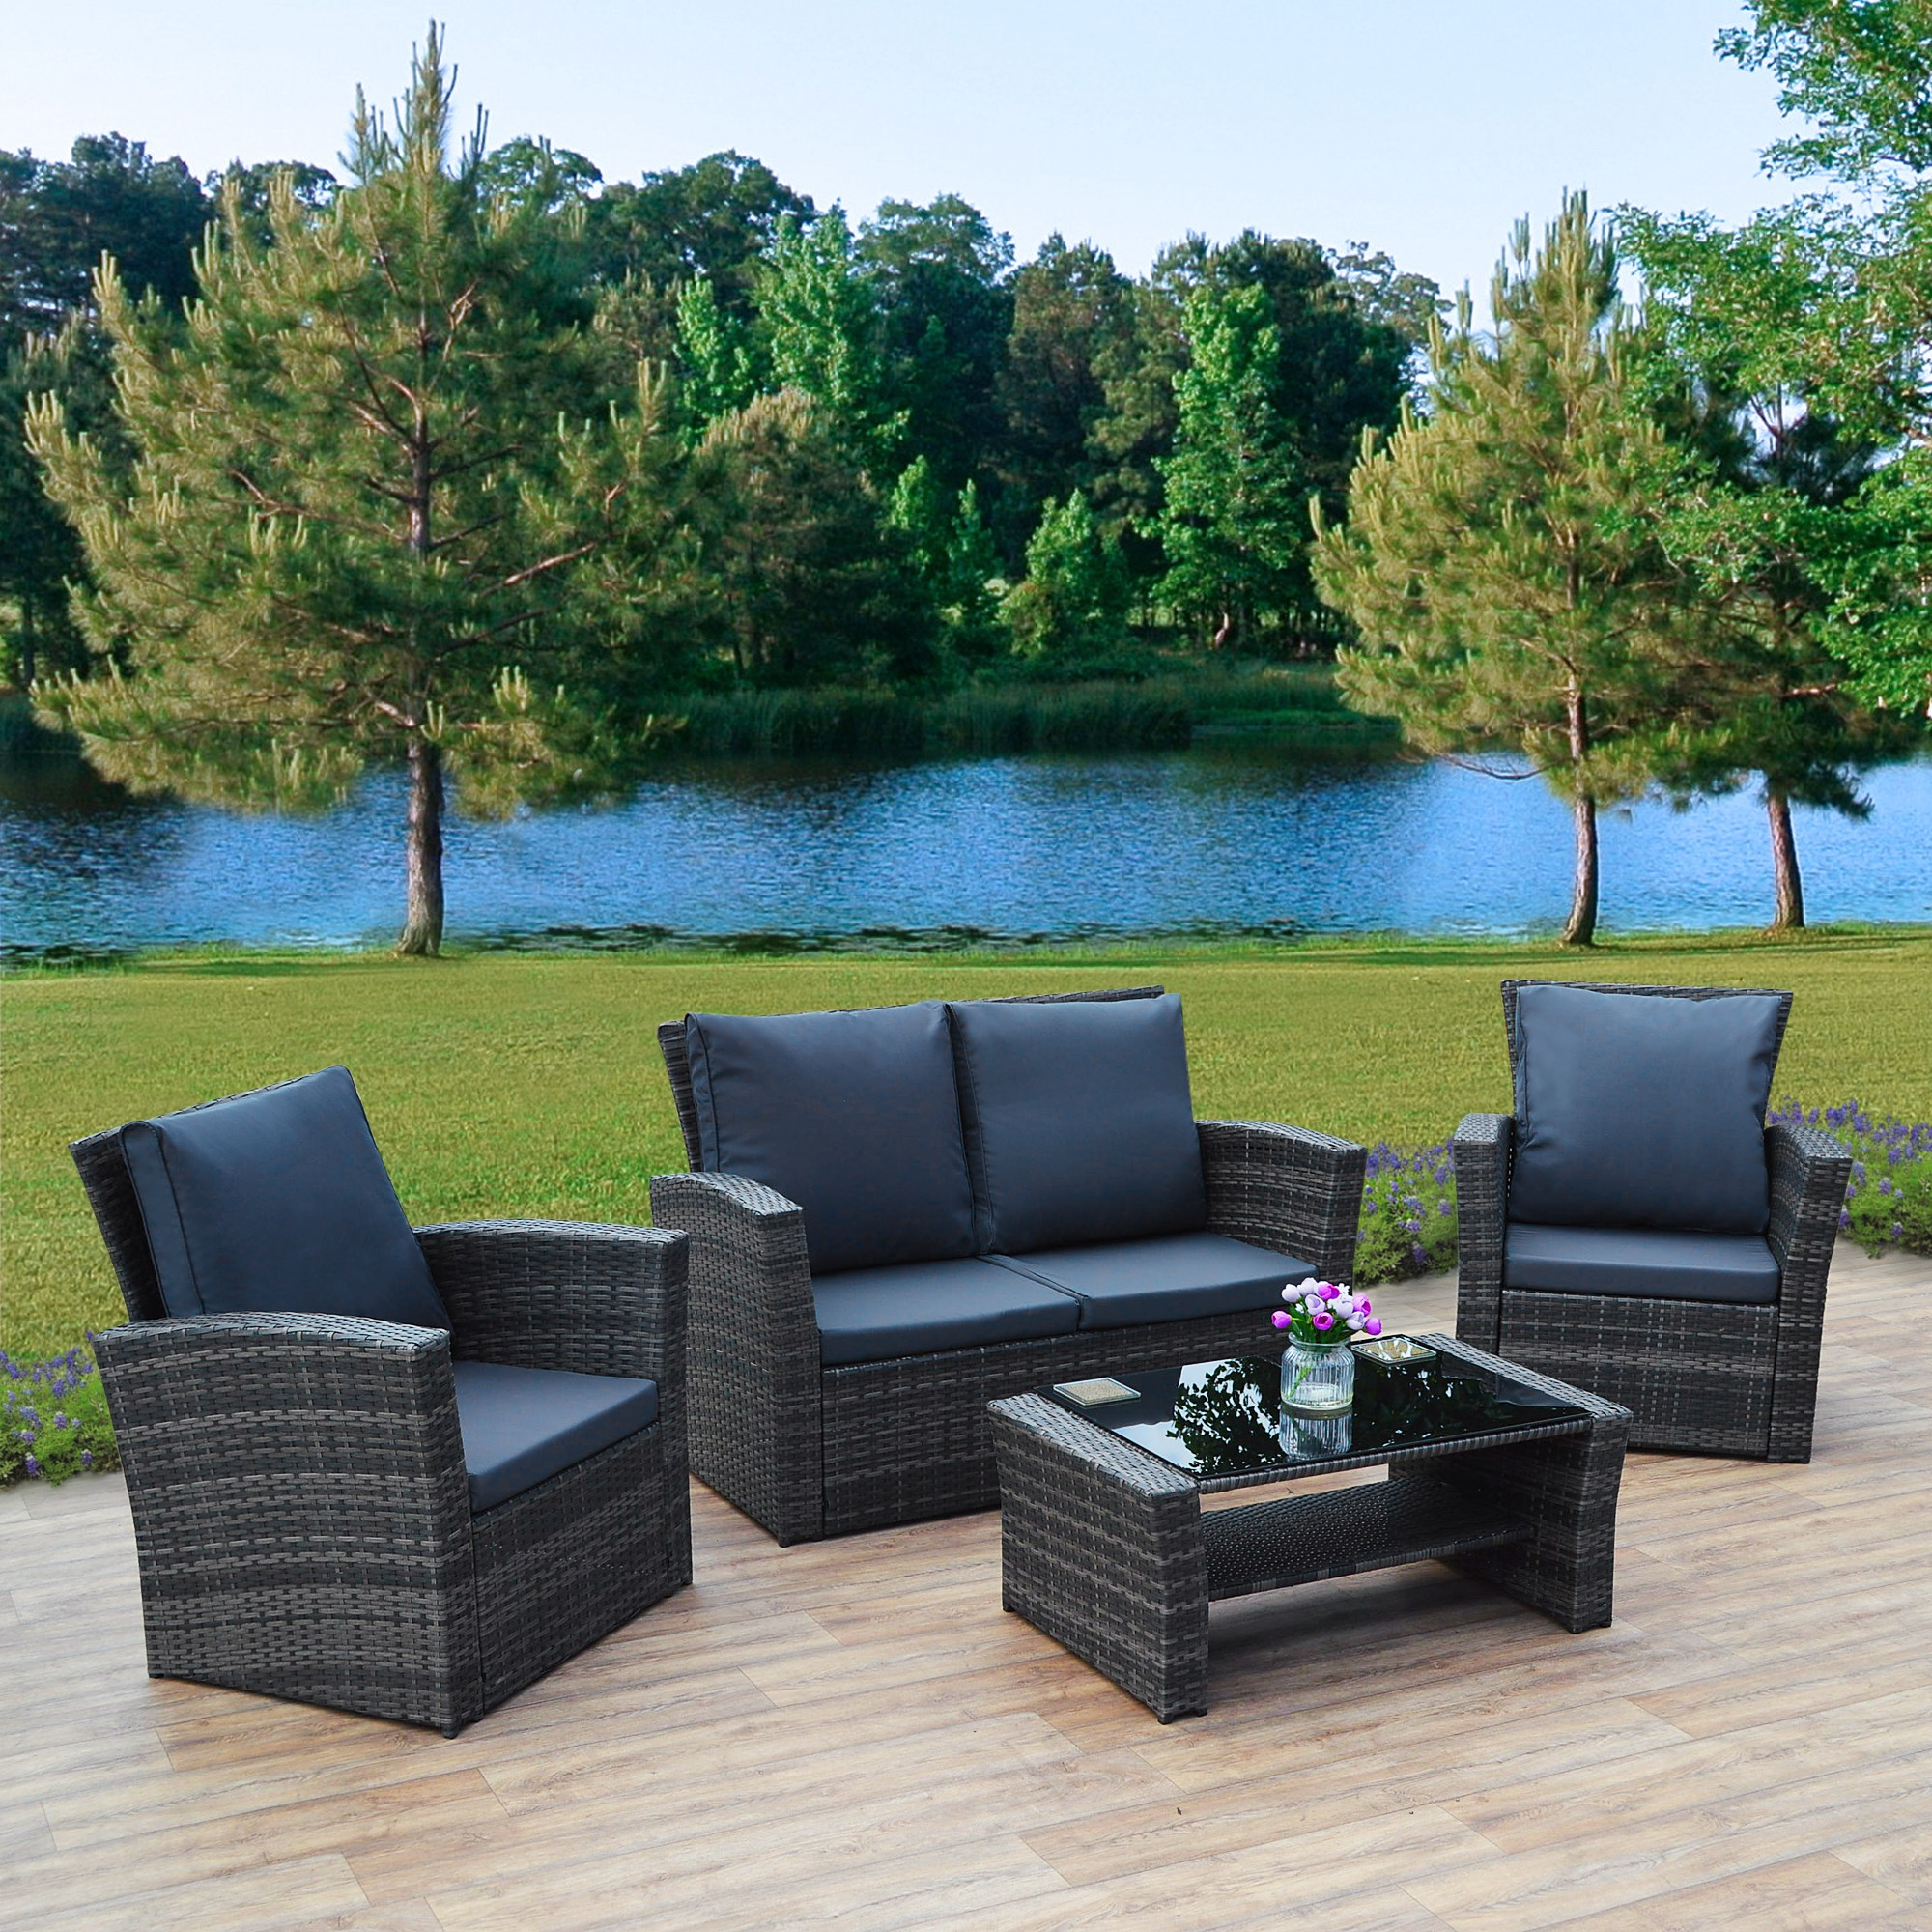 Florence 8 Piece Rattan Sofa Set With Cushions 4 Piece Algarve Rattan Sofa Set For Patios Conservatories